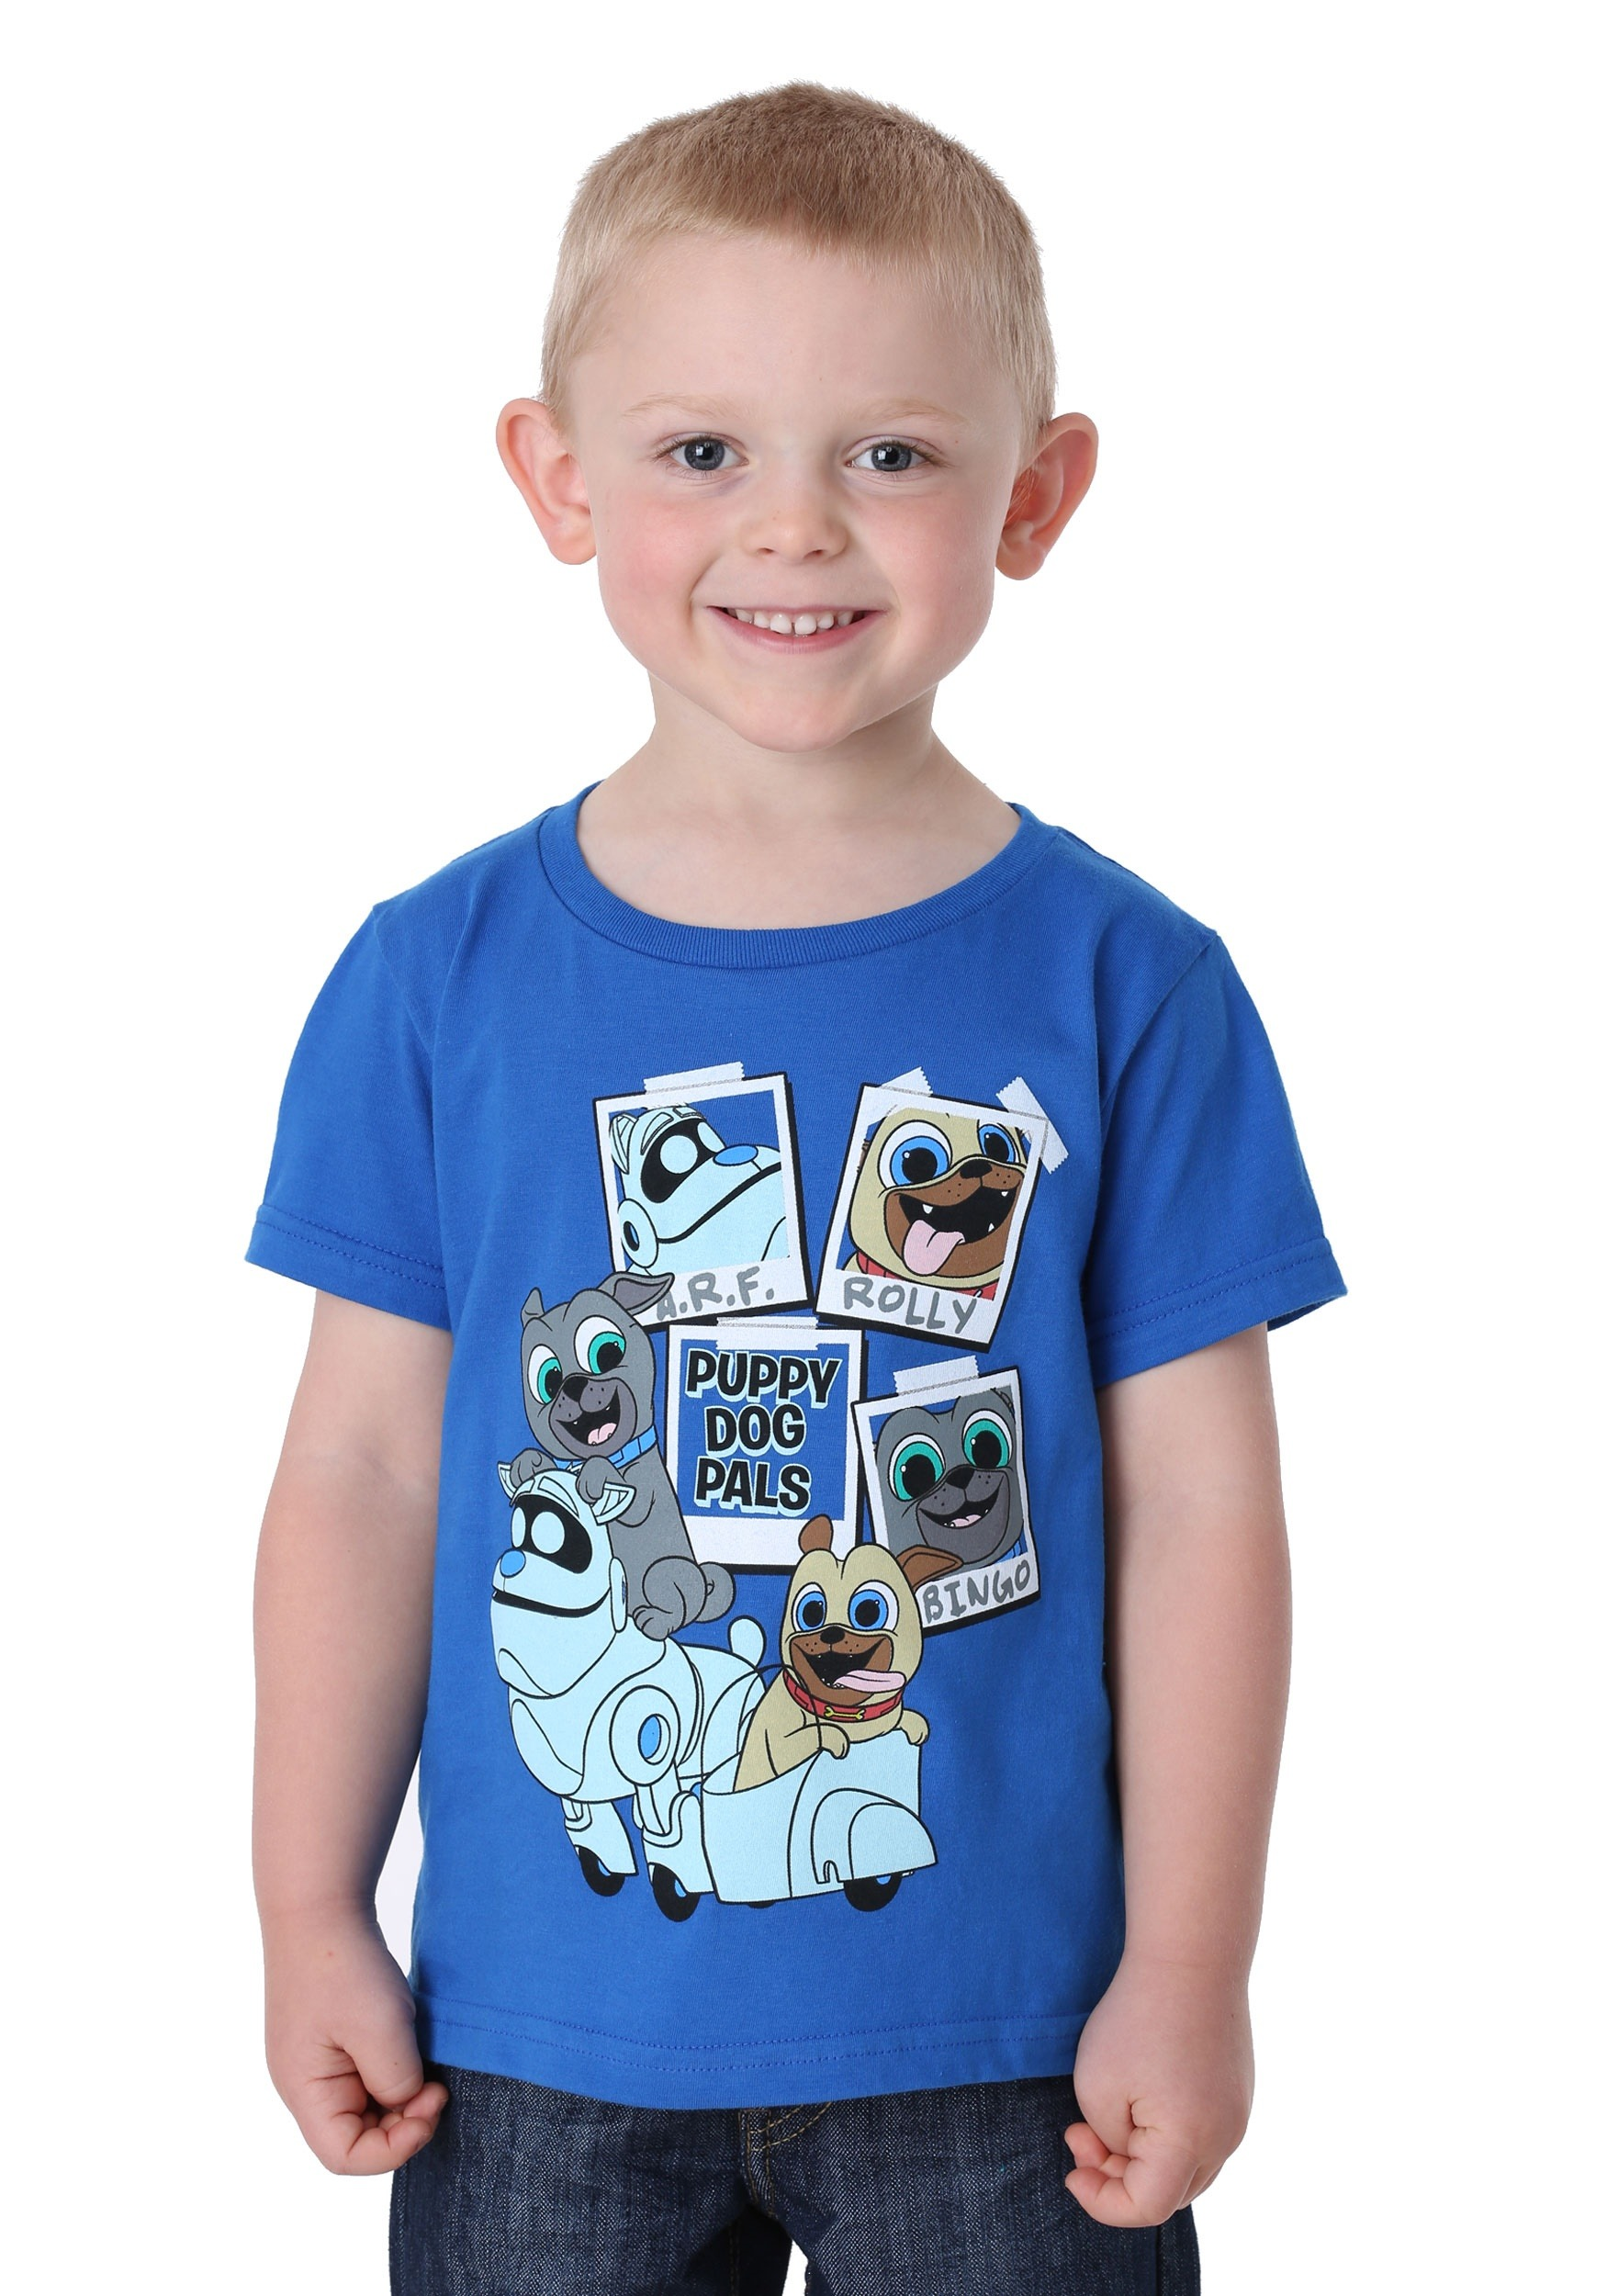 Disguise Puppy Dog Pals Rolly Costume